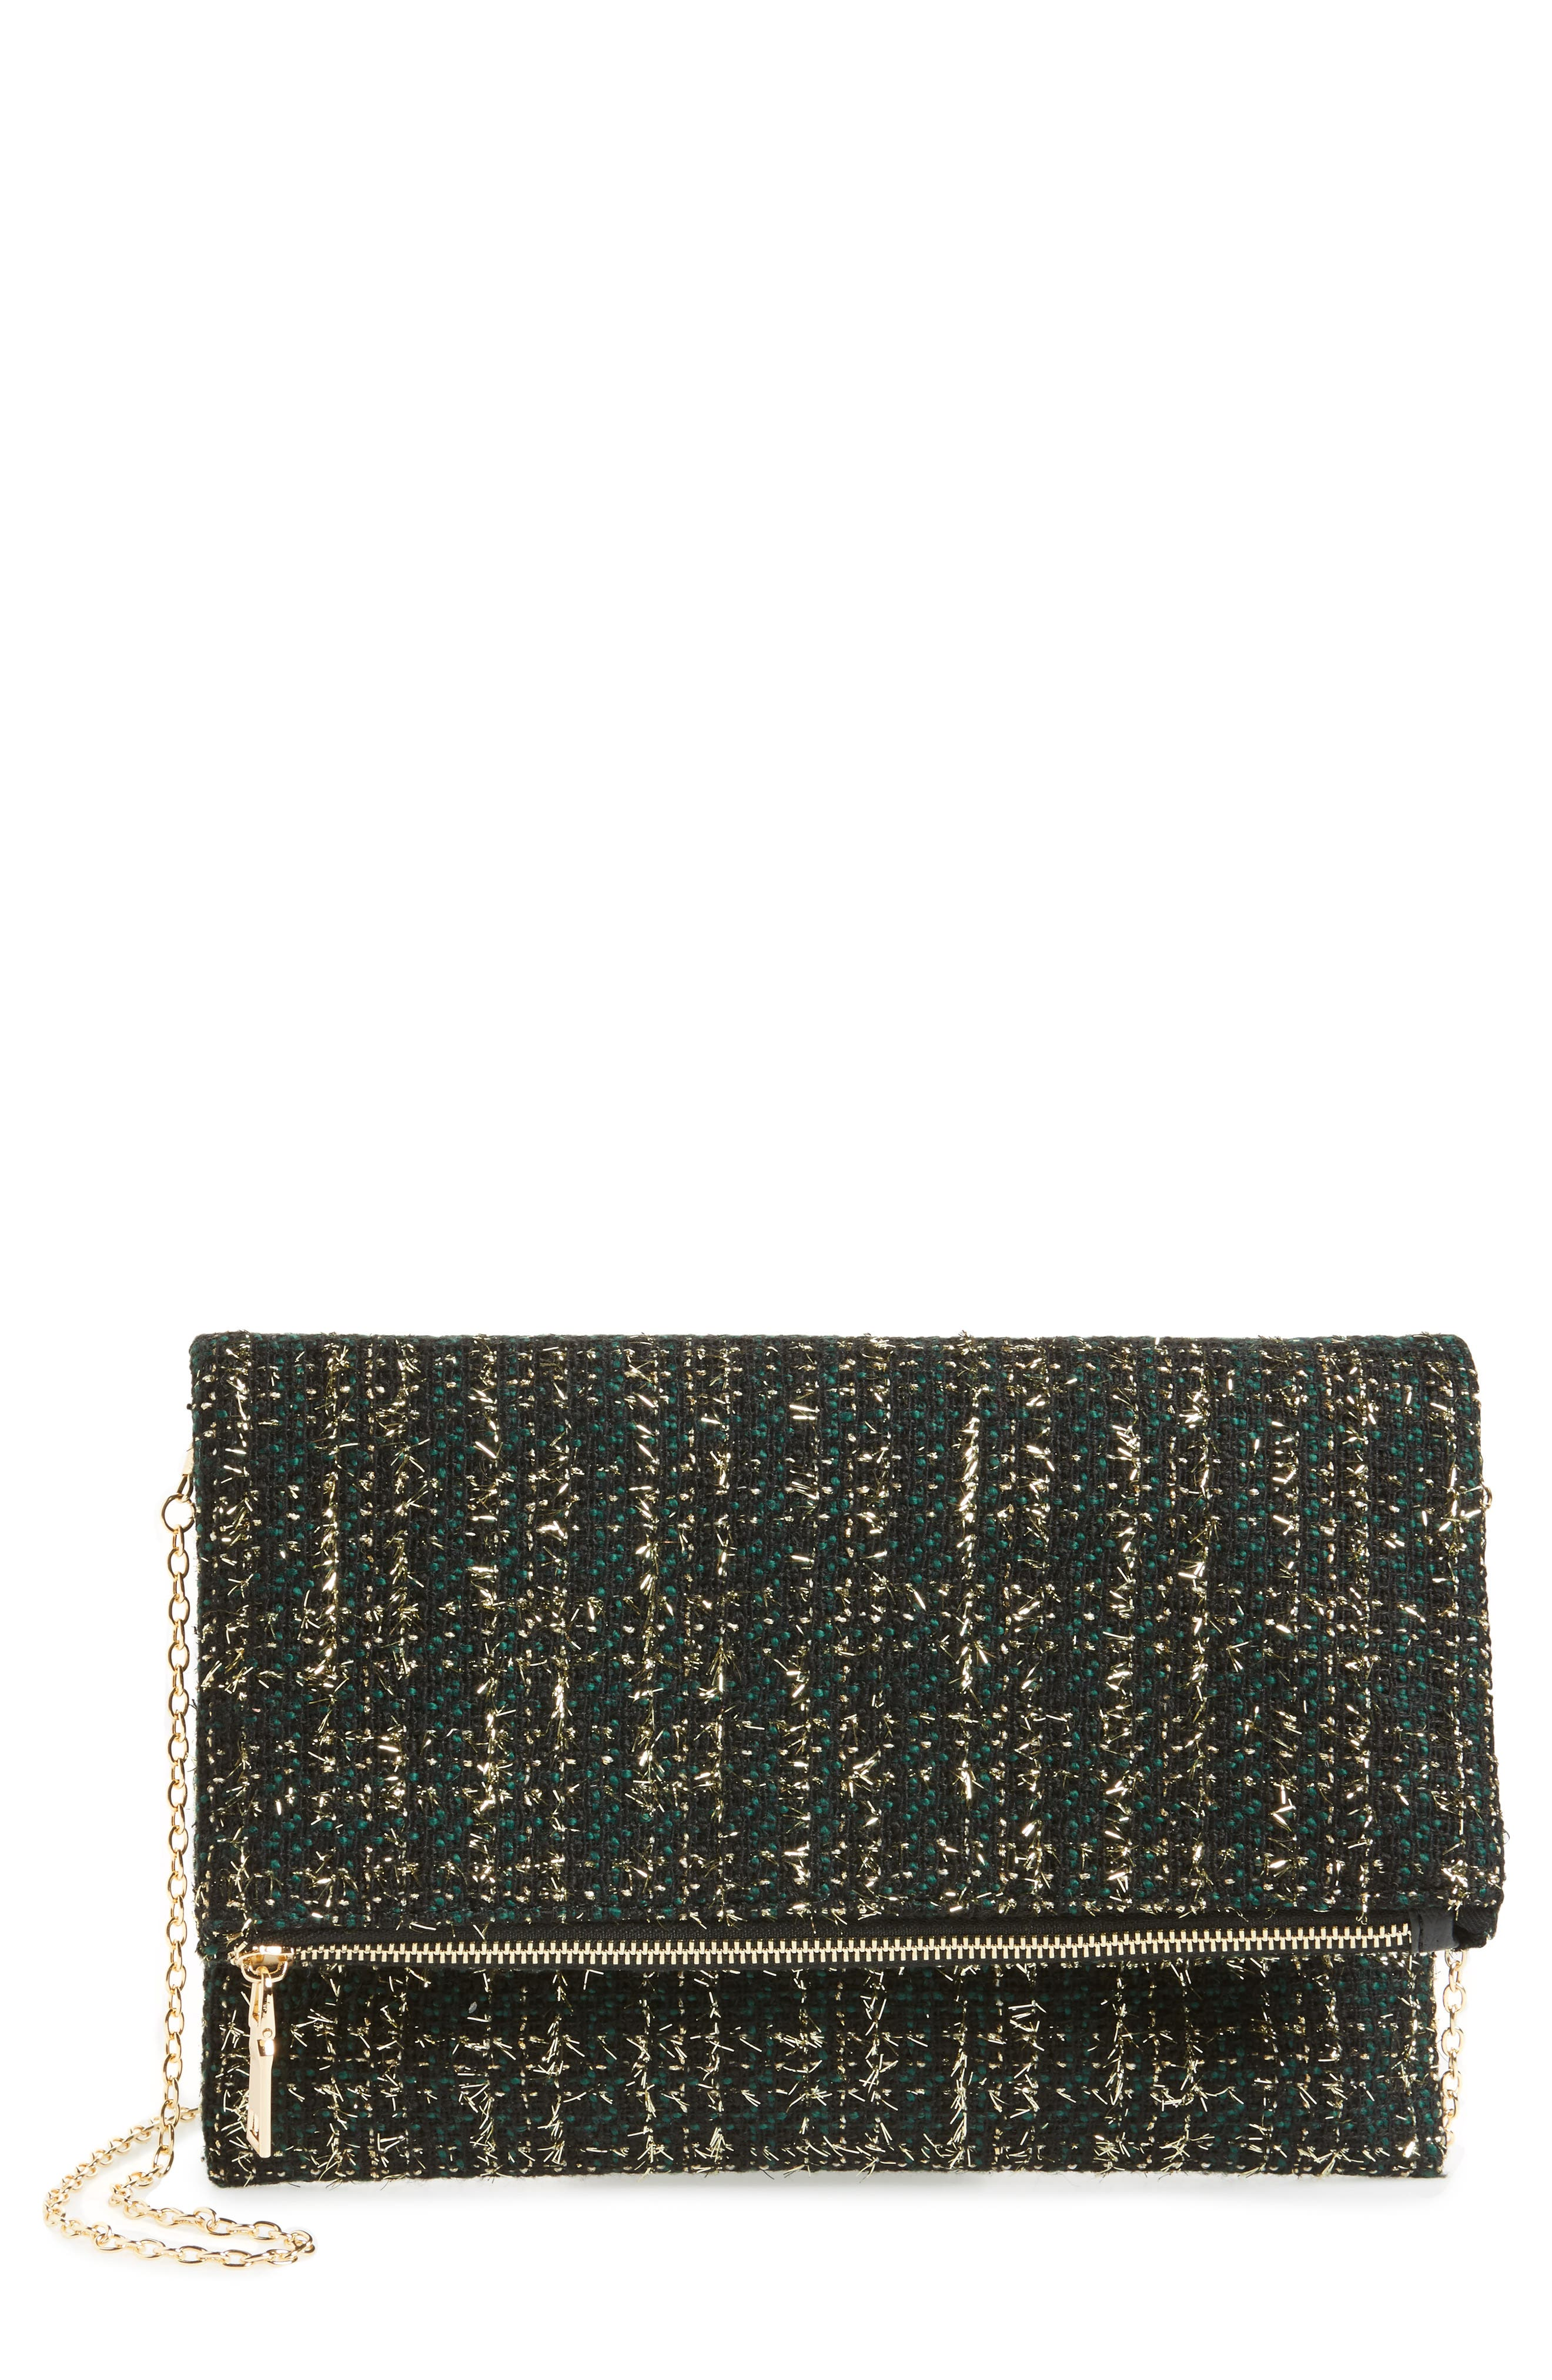 Alternate Image 1 Selected - Sole Society Tweed Foldover Clutch